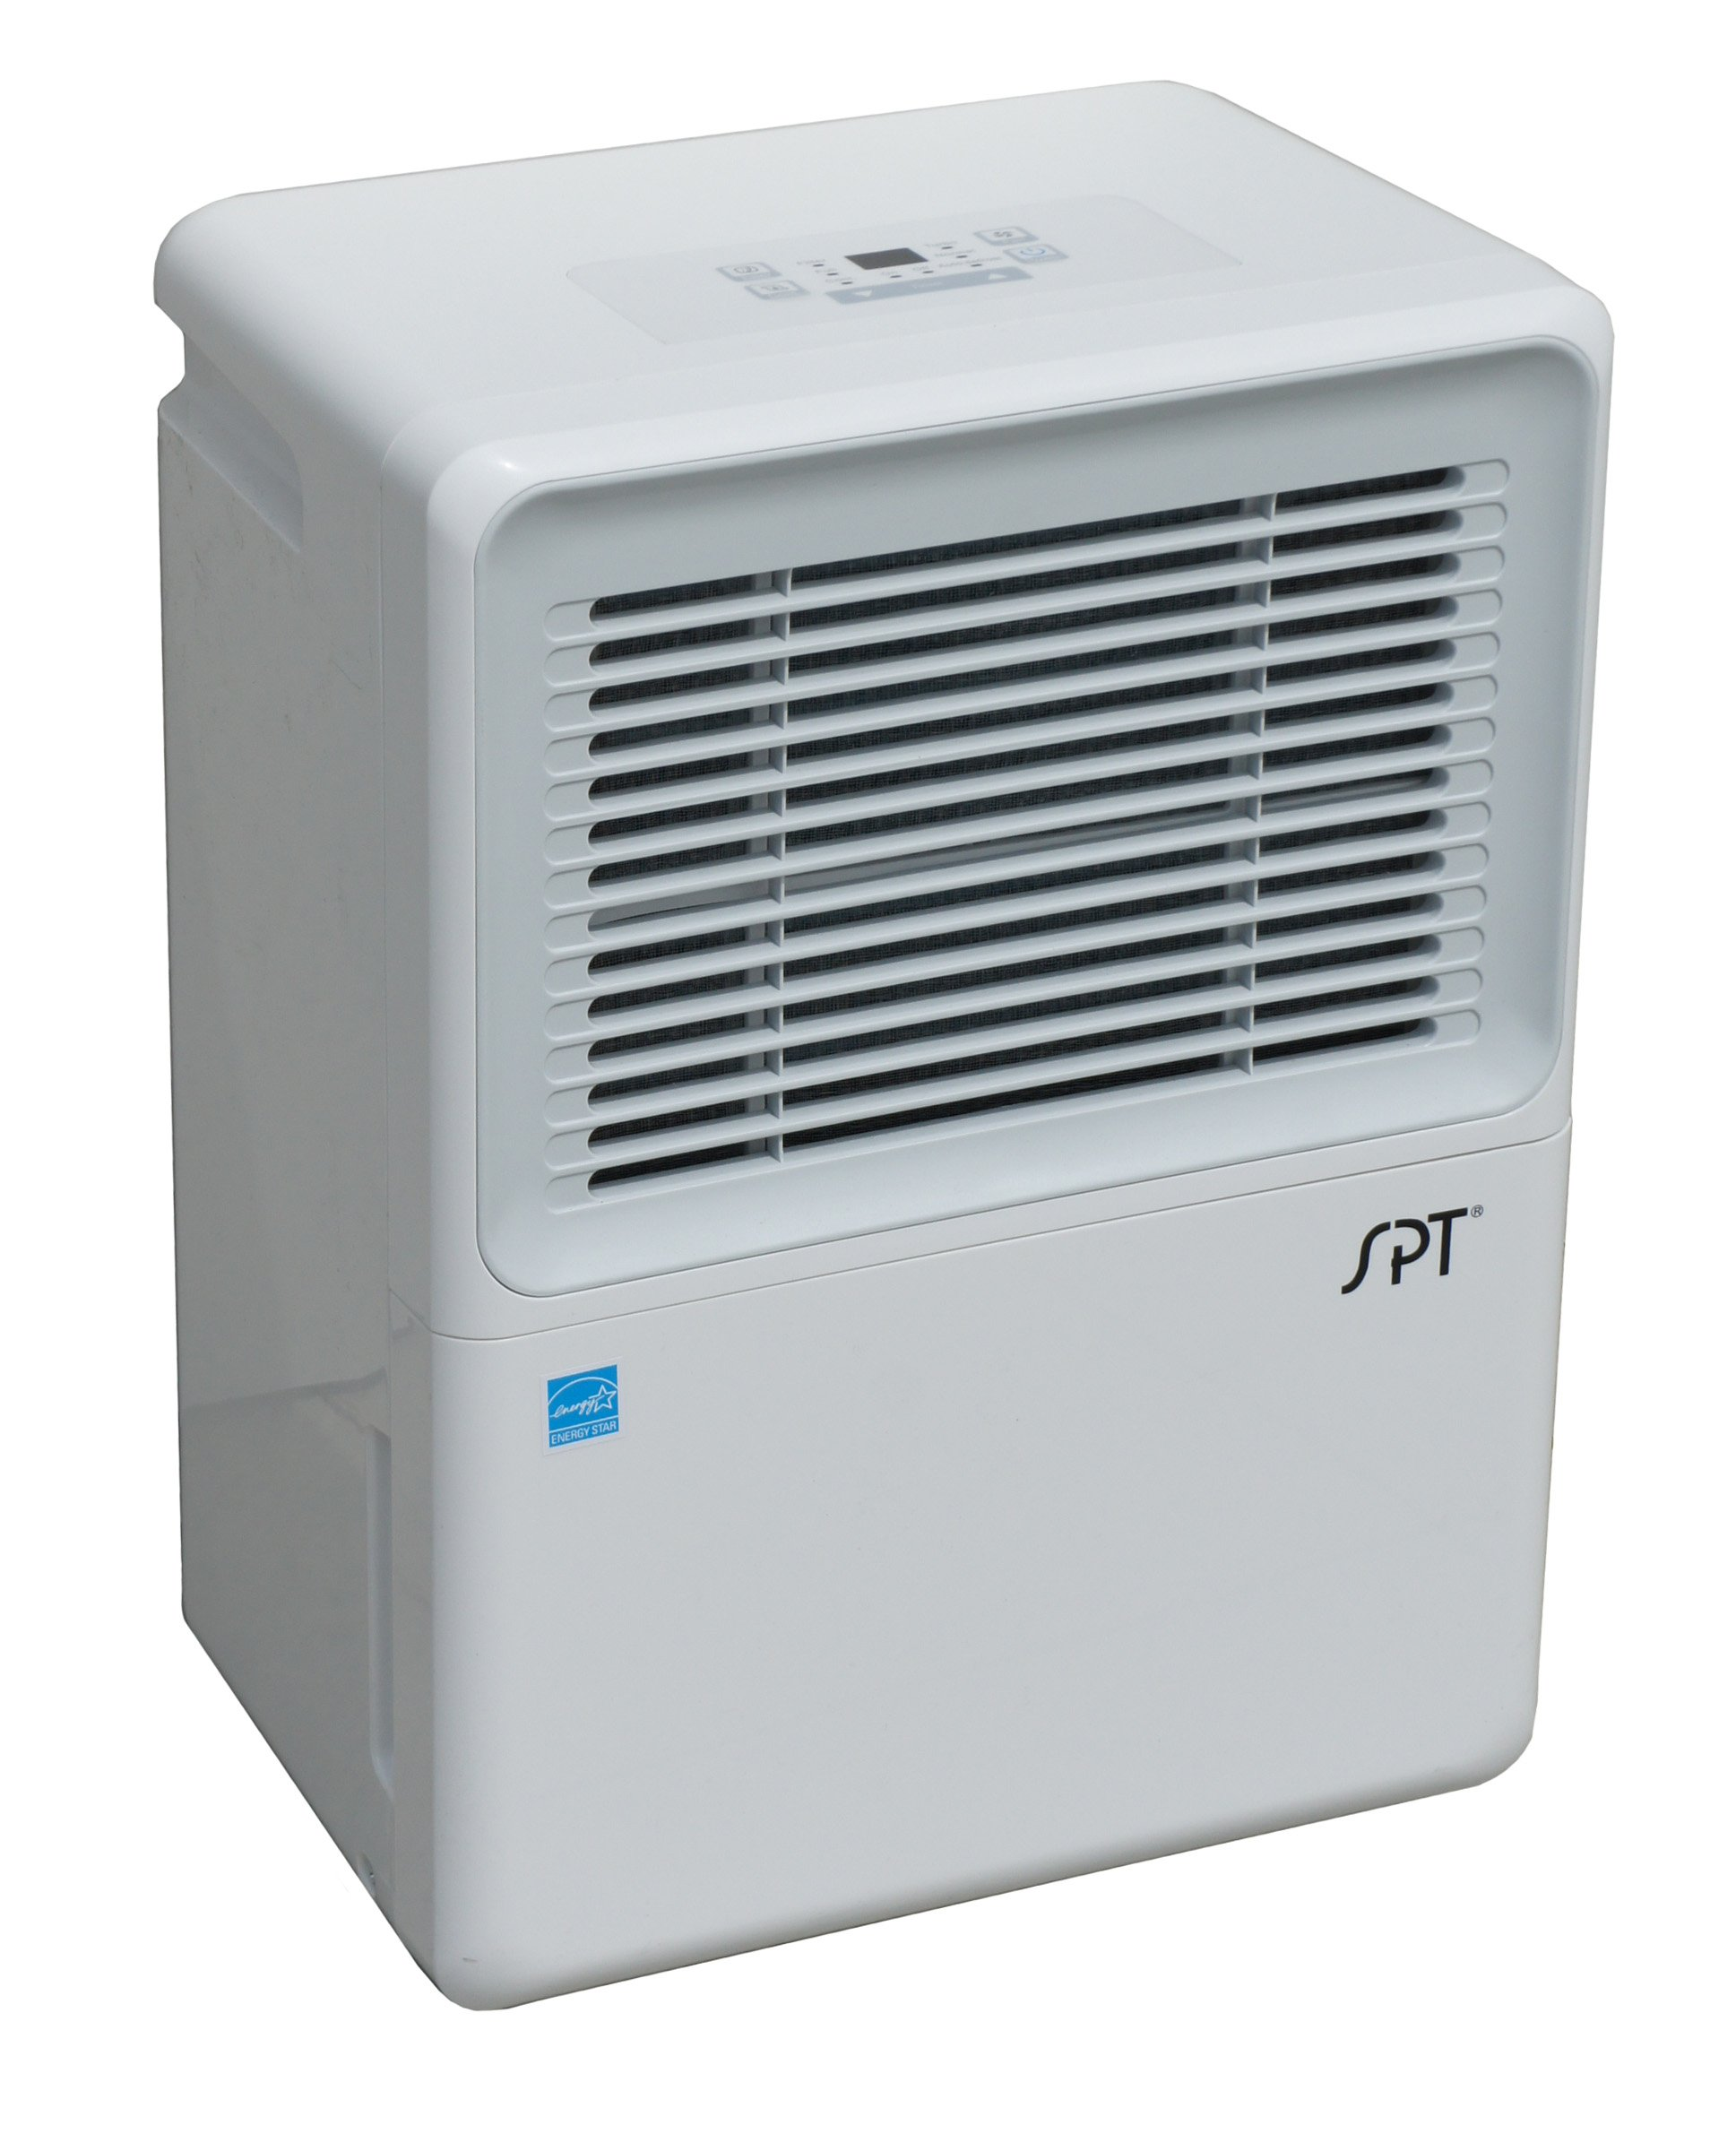 SPT SD-72PE Energy-Star Dehumidifier with Built-In Pump, 70-Pint